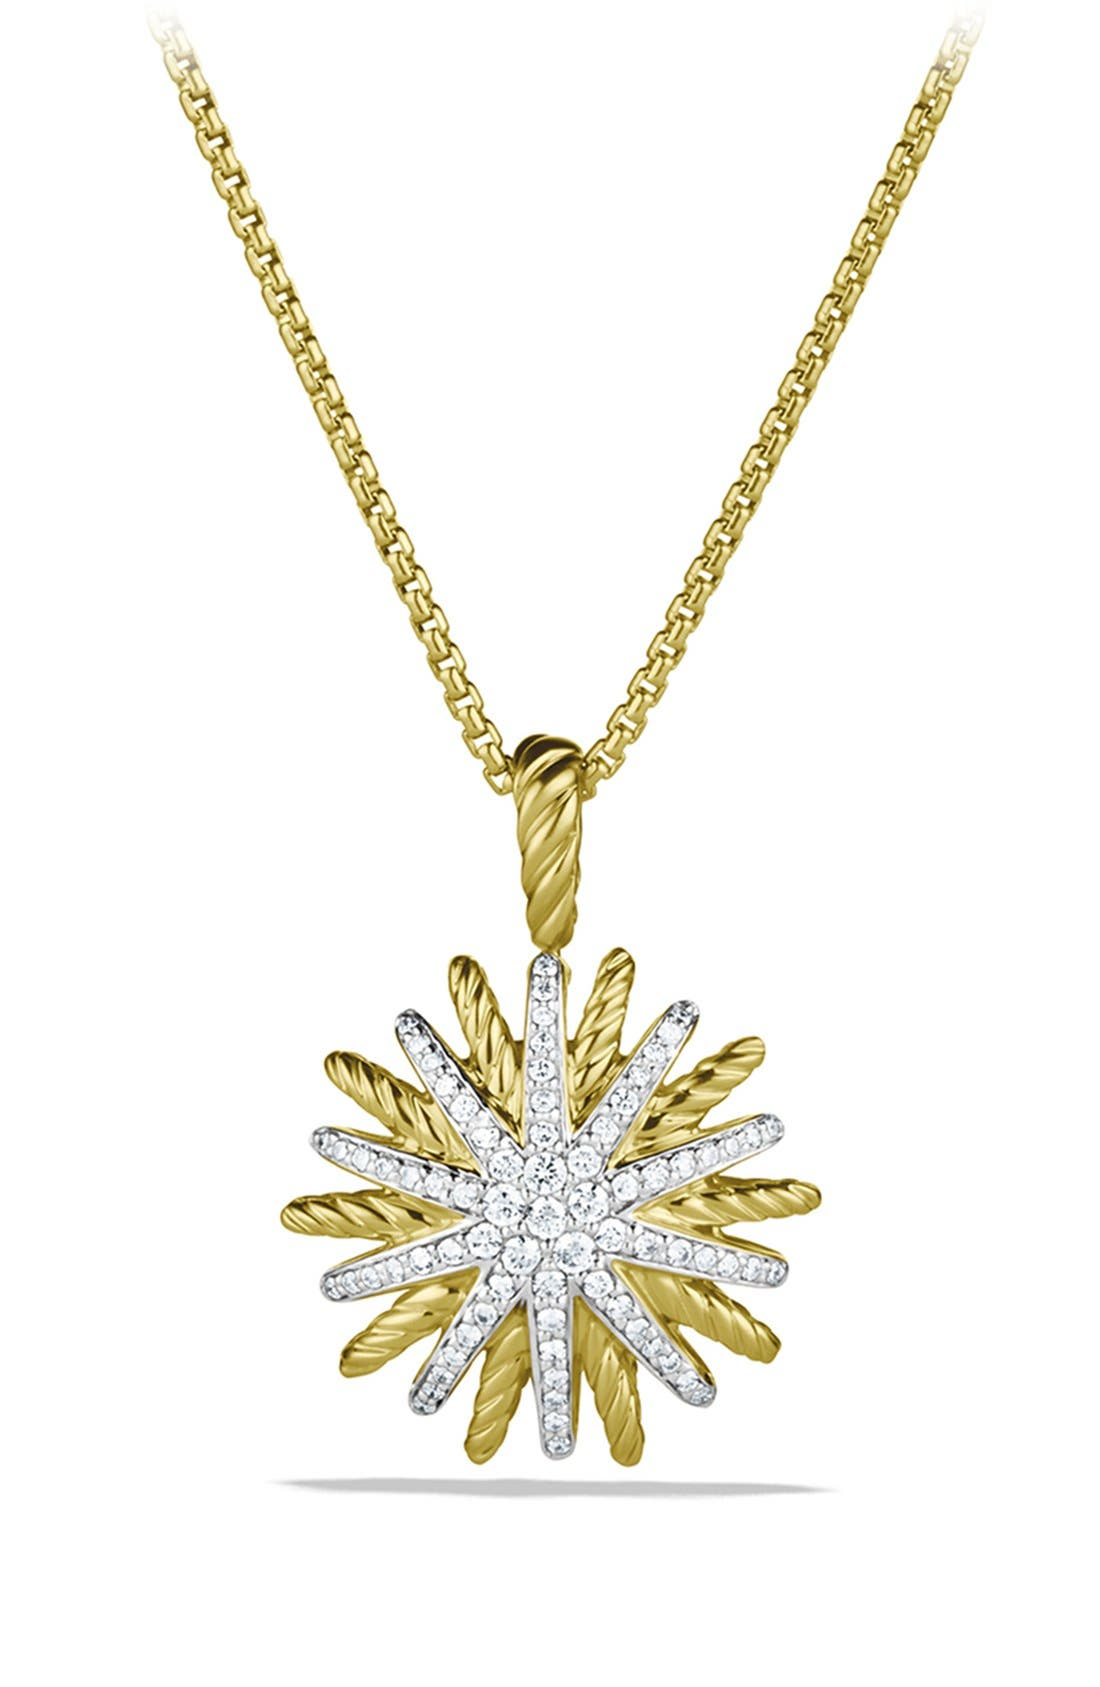 'Starburst' Small Pendant with Diamonds in Gold on Chain,                             Main thumbnail 1, color,                             DIAMOND